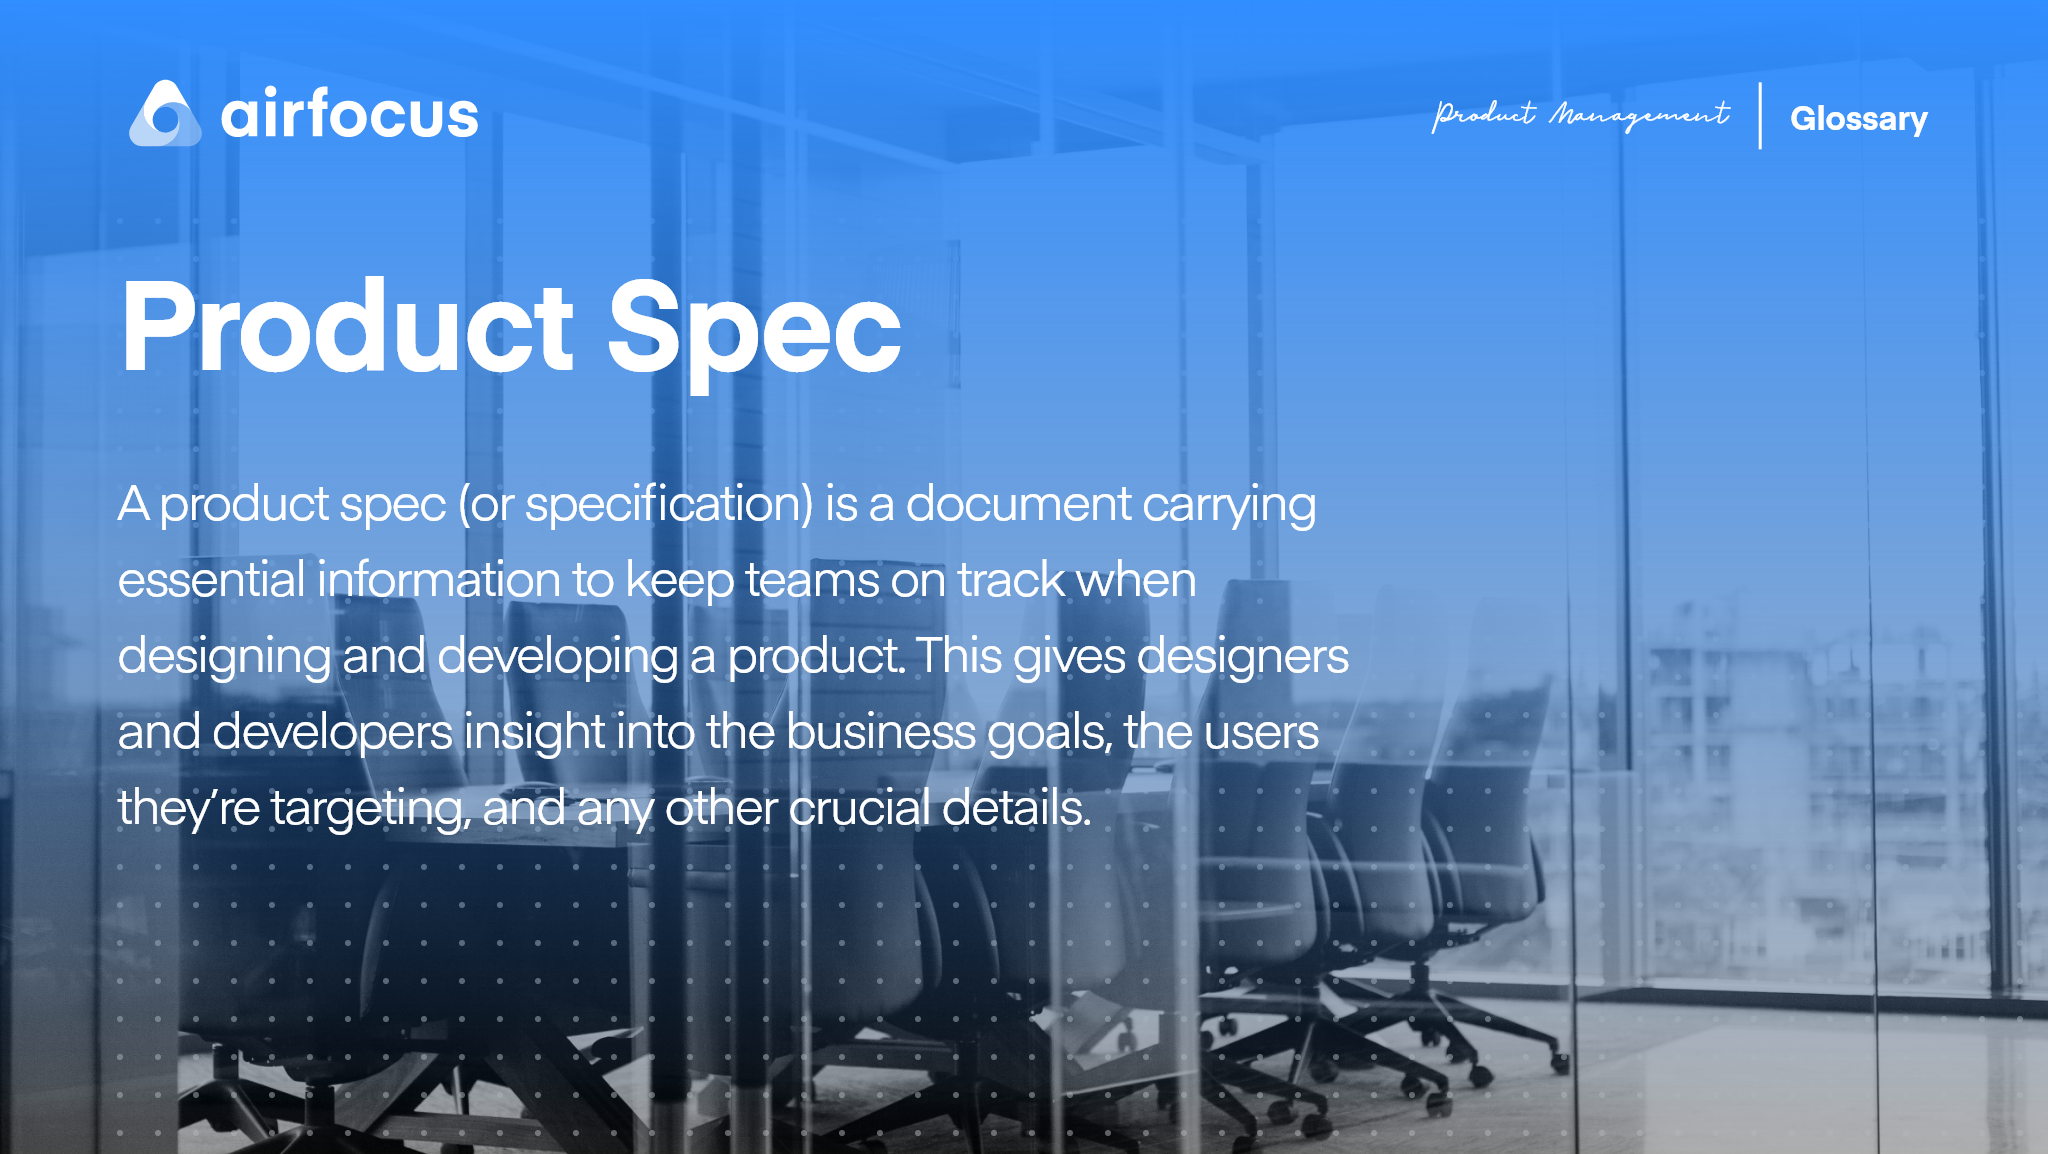 What Is A Product Spec?